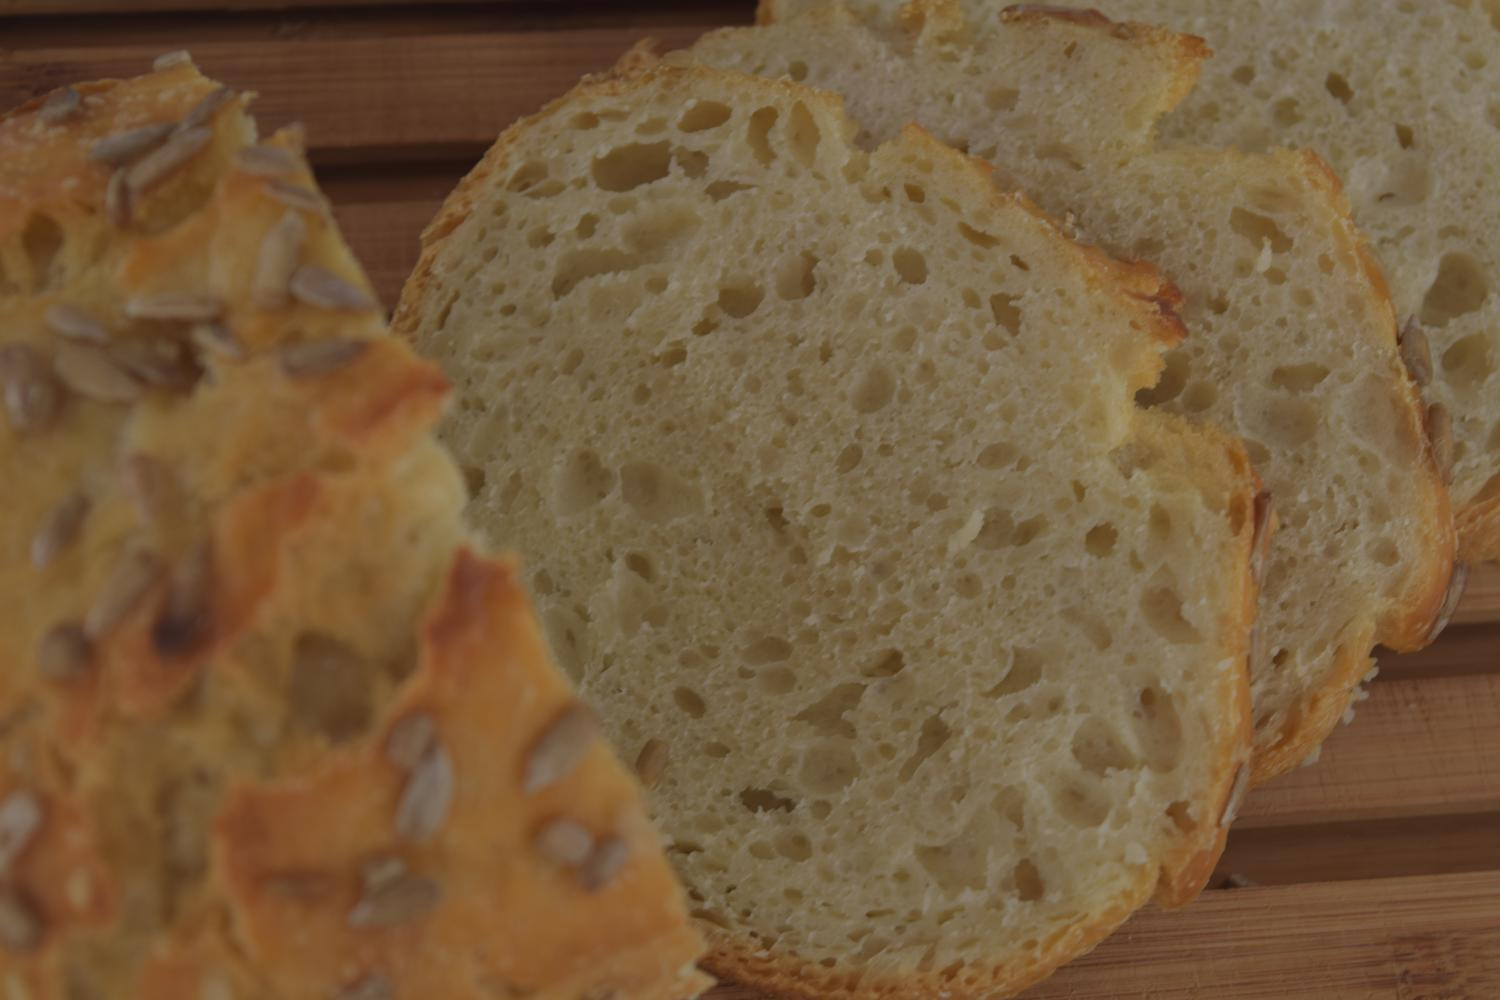 Soft crumb and crunchy crust of a LoafNest yogurt 'sourdough' bread